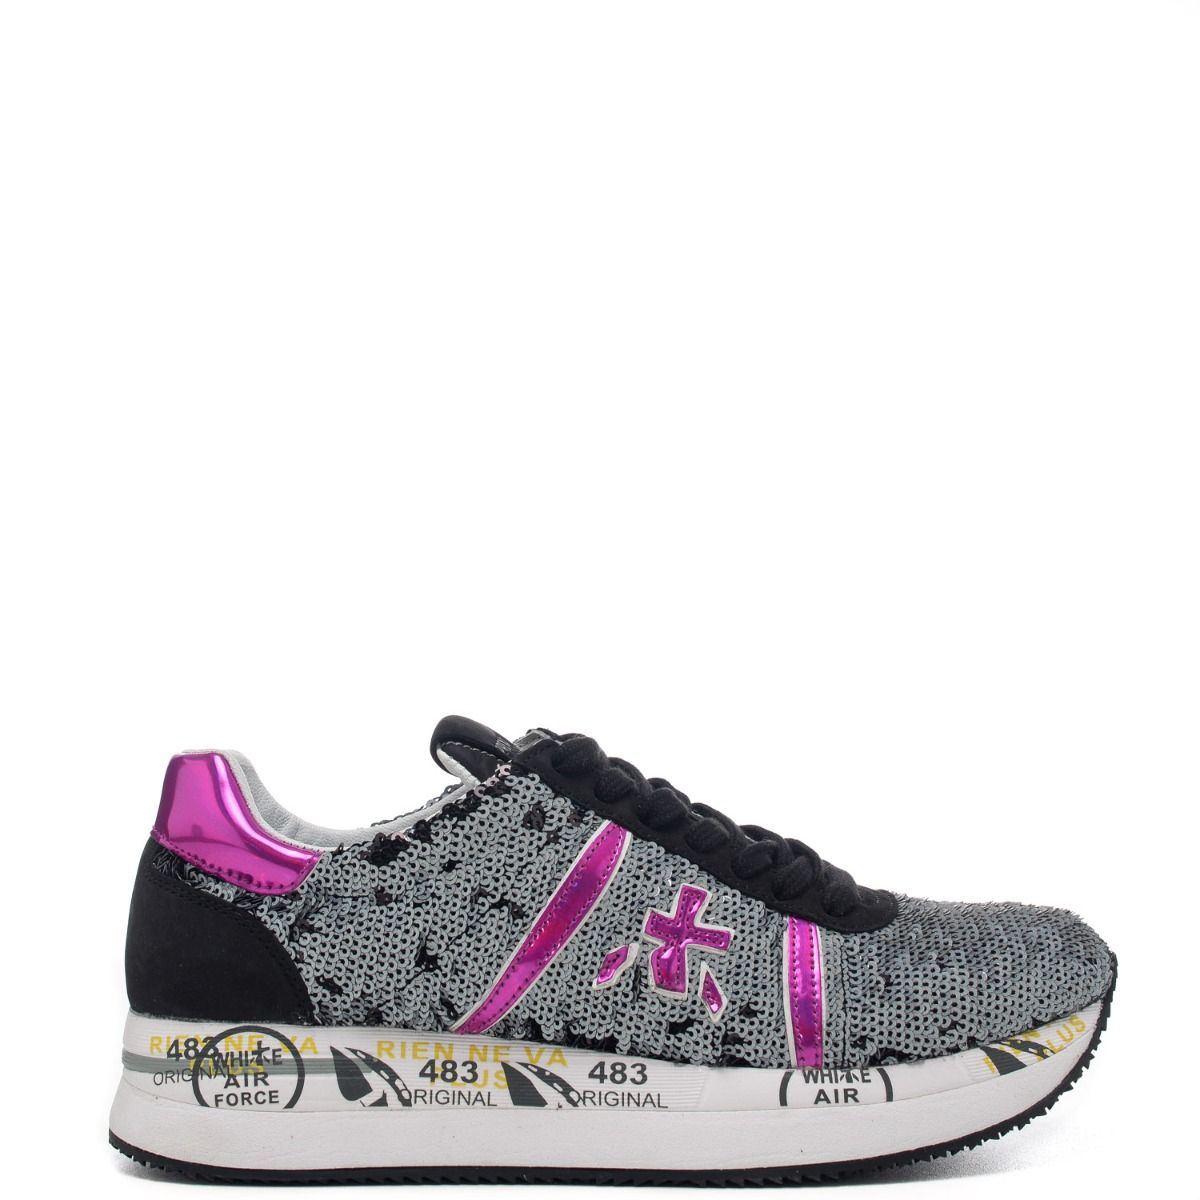 Premiata sneakers CONNY 4503